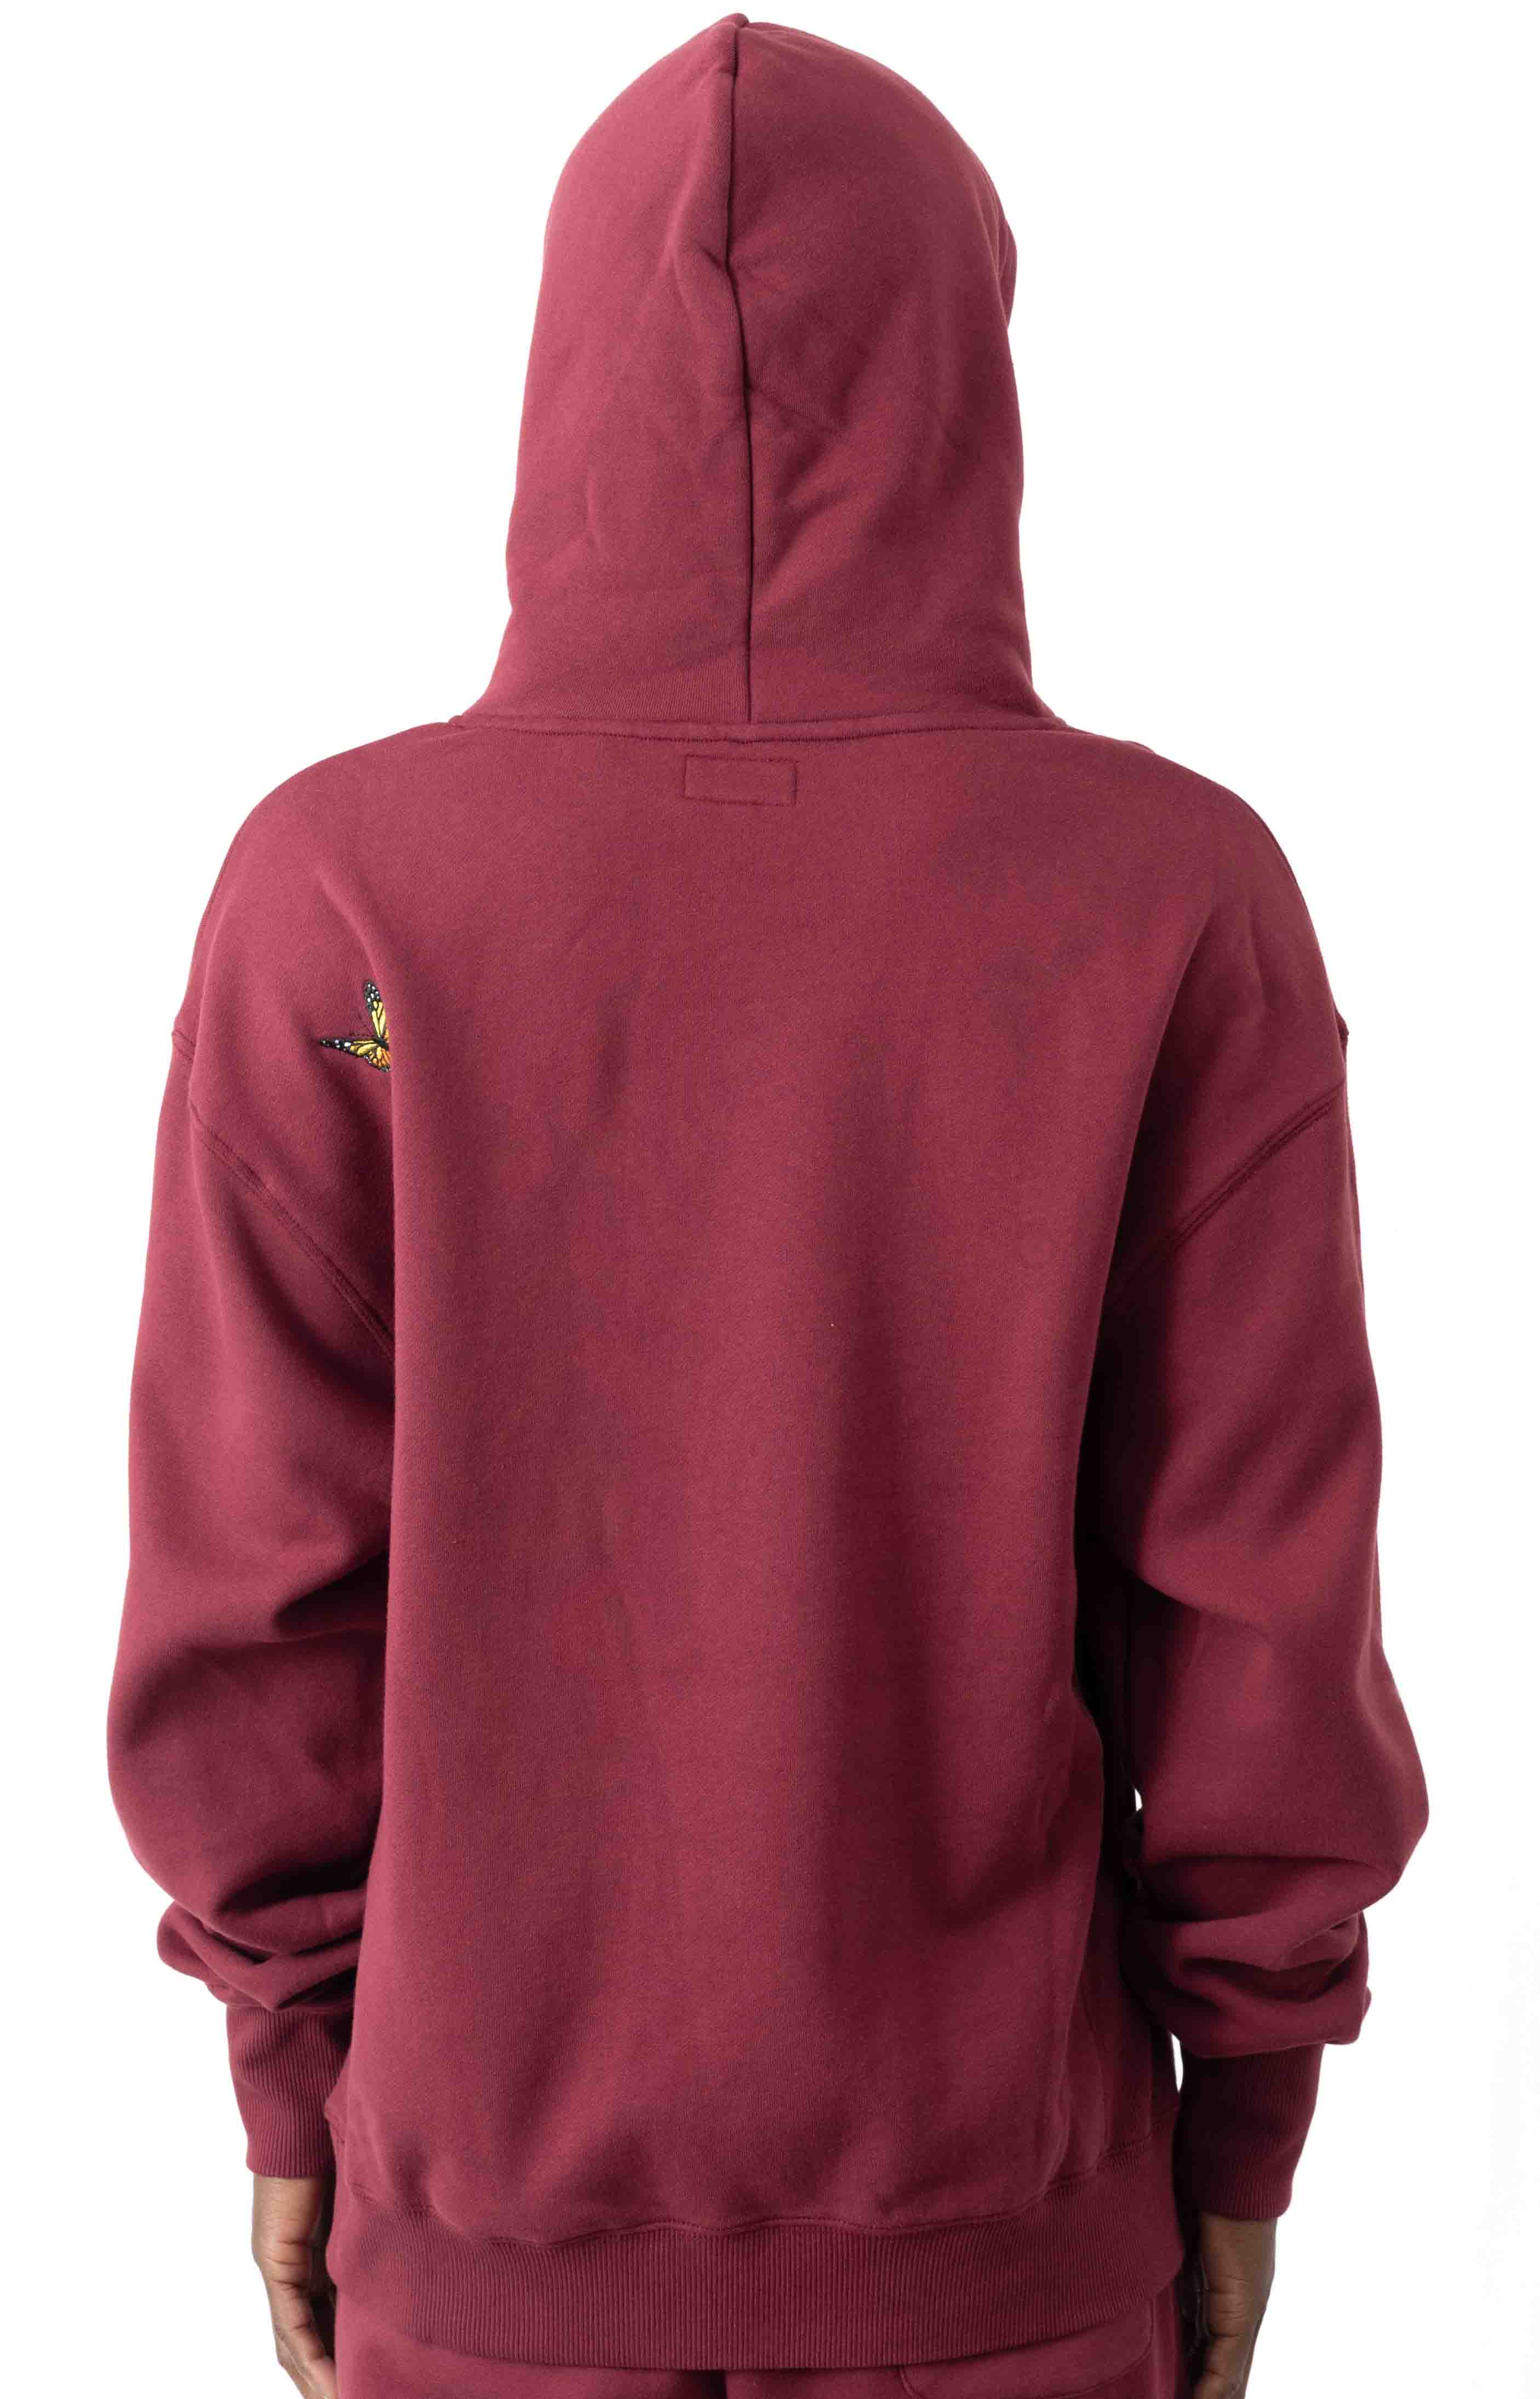 Butterfly Embroidered Pullover Hoodie - Burgundy  3